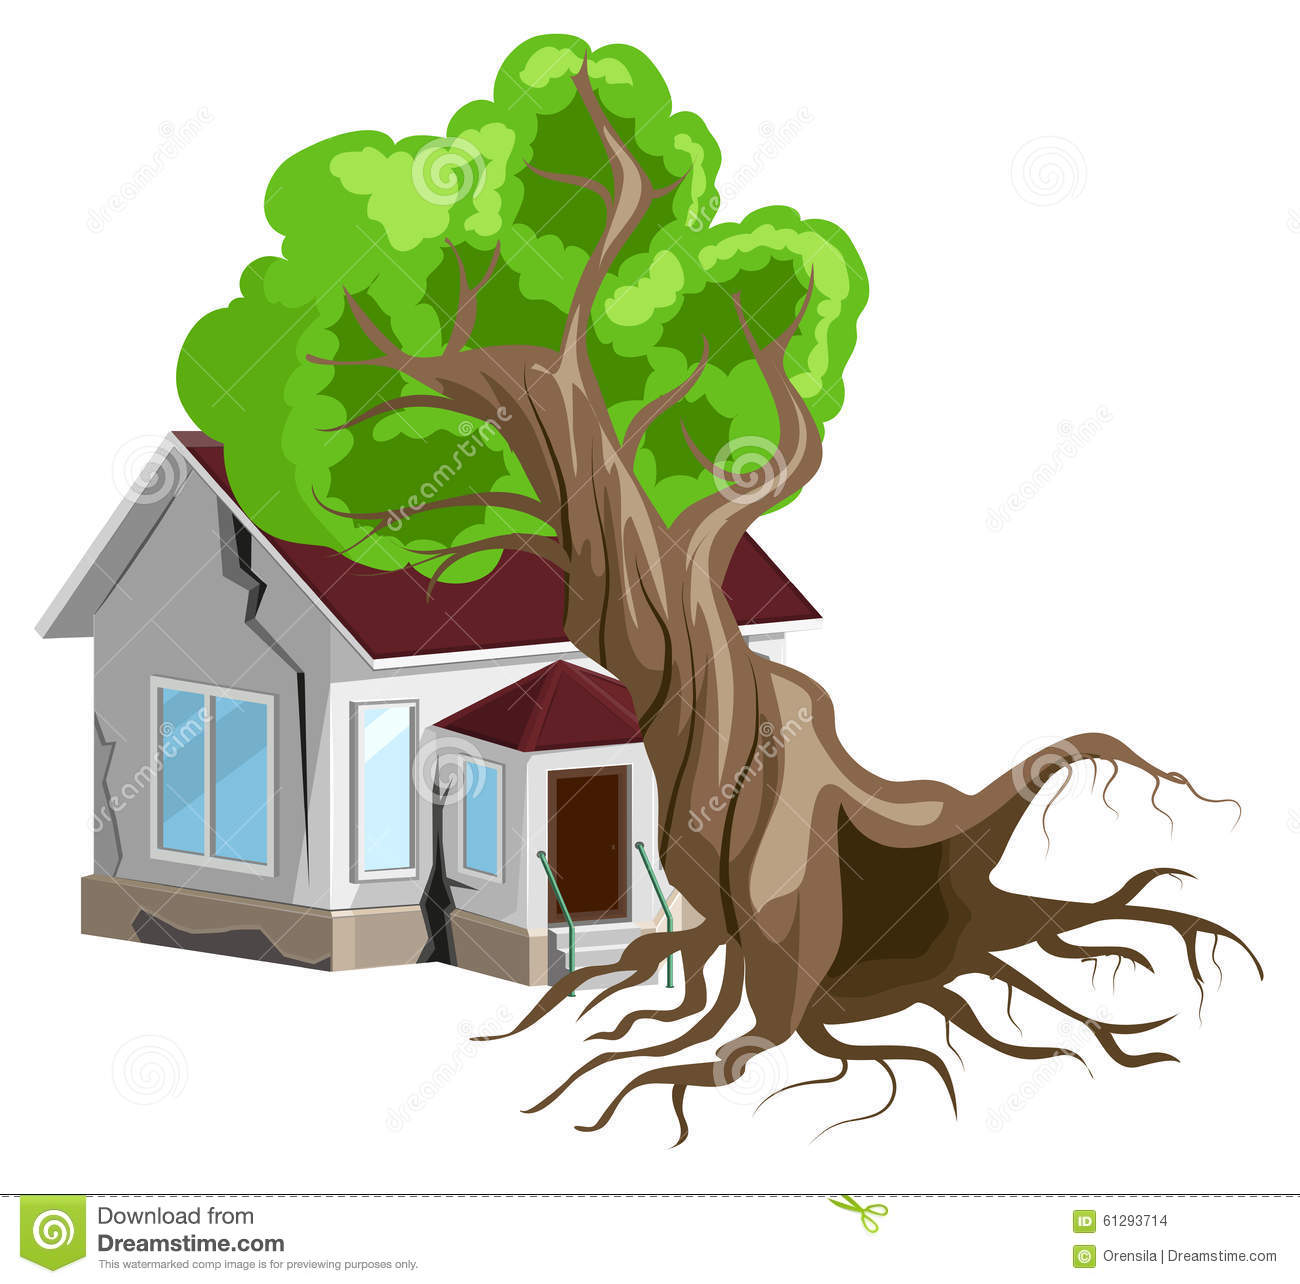 Cartoon Tree Falling – Free for commercial use no attribution required high quality images.